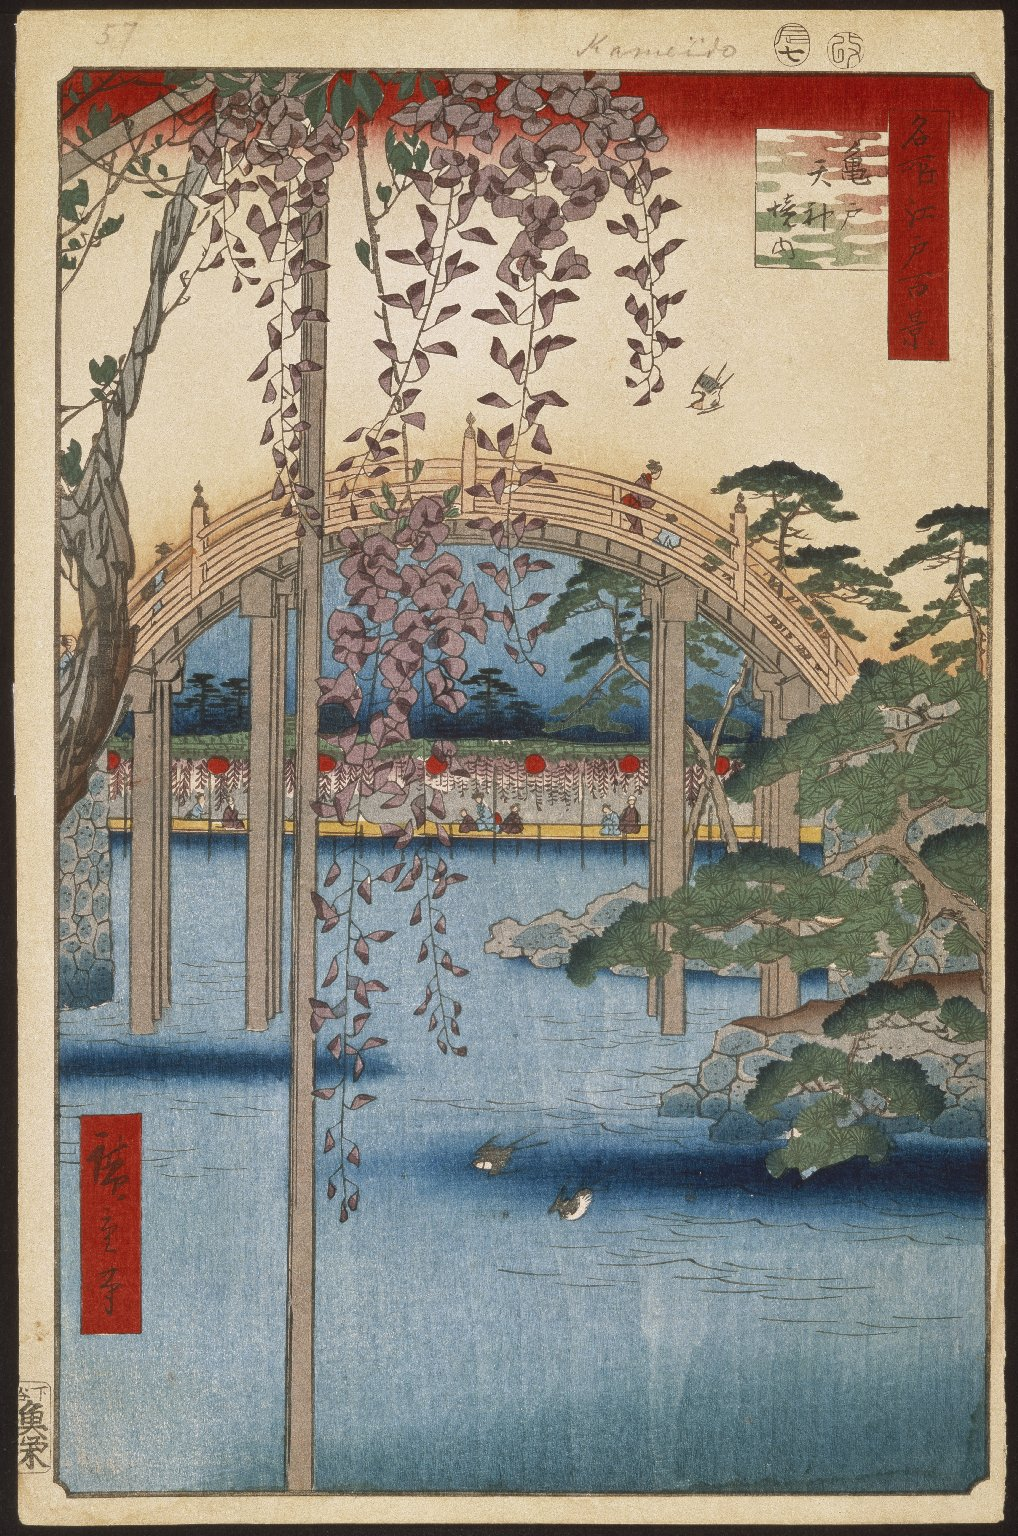 Brooklyn Museum: Inside Kameido Tenjin Shrine (Kameido Tenjin Keidai), No. 65 from One Hundred Famous Views of Edo